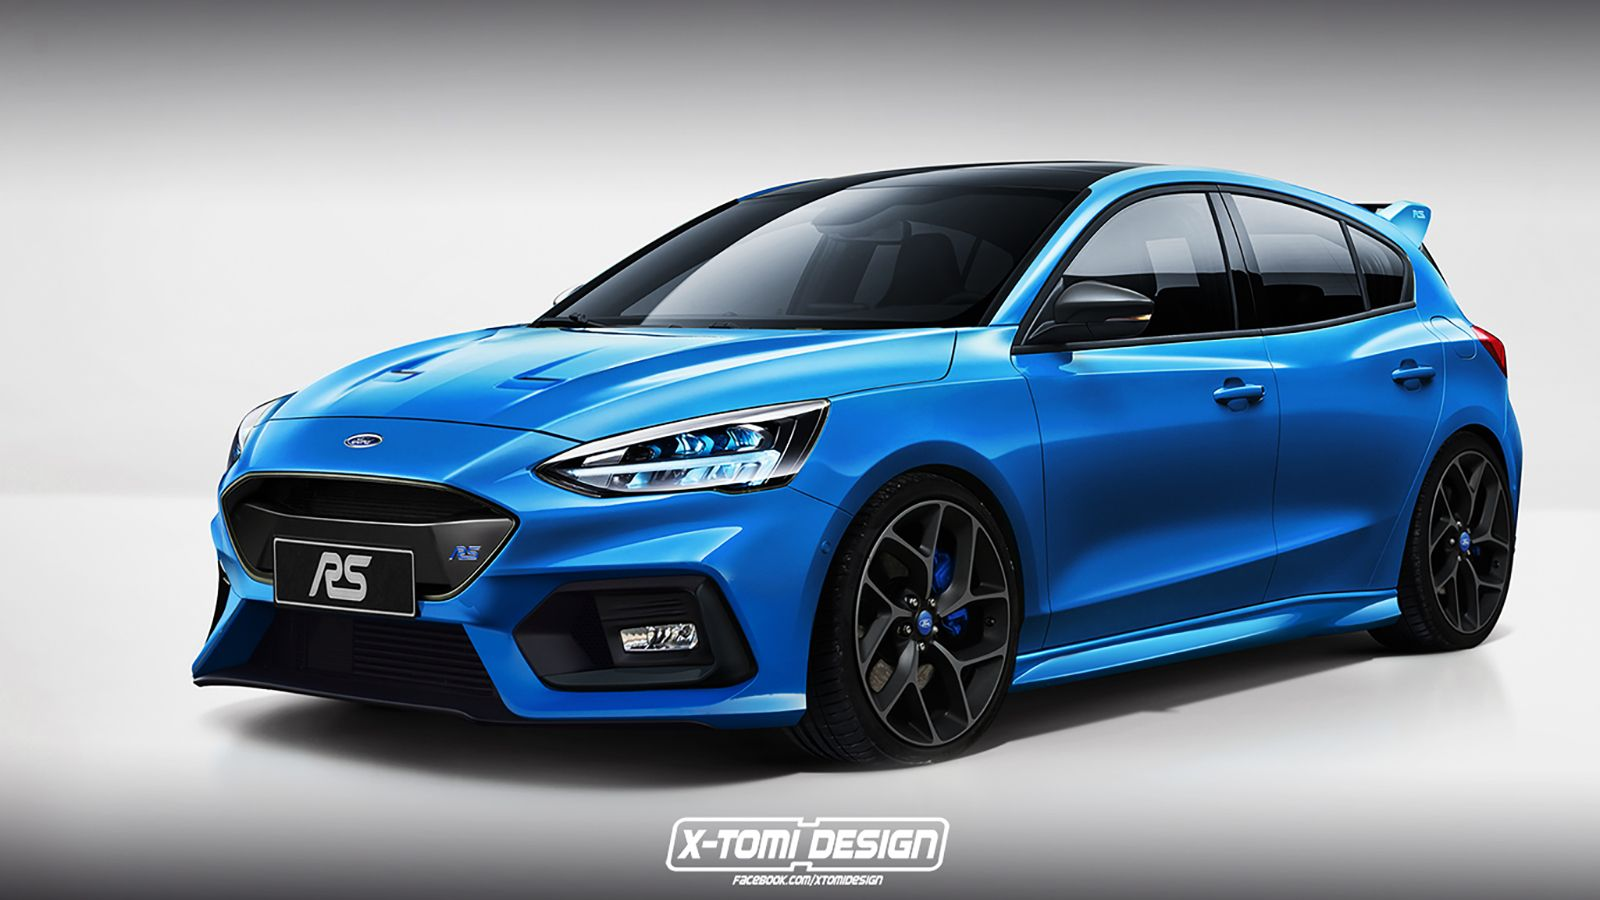 Here S A Preview Of What The Ford Focus St And Focus Rs Might Look